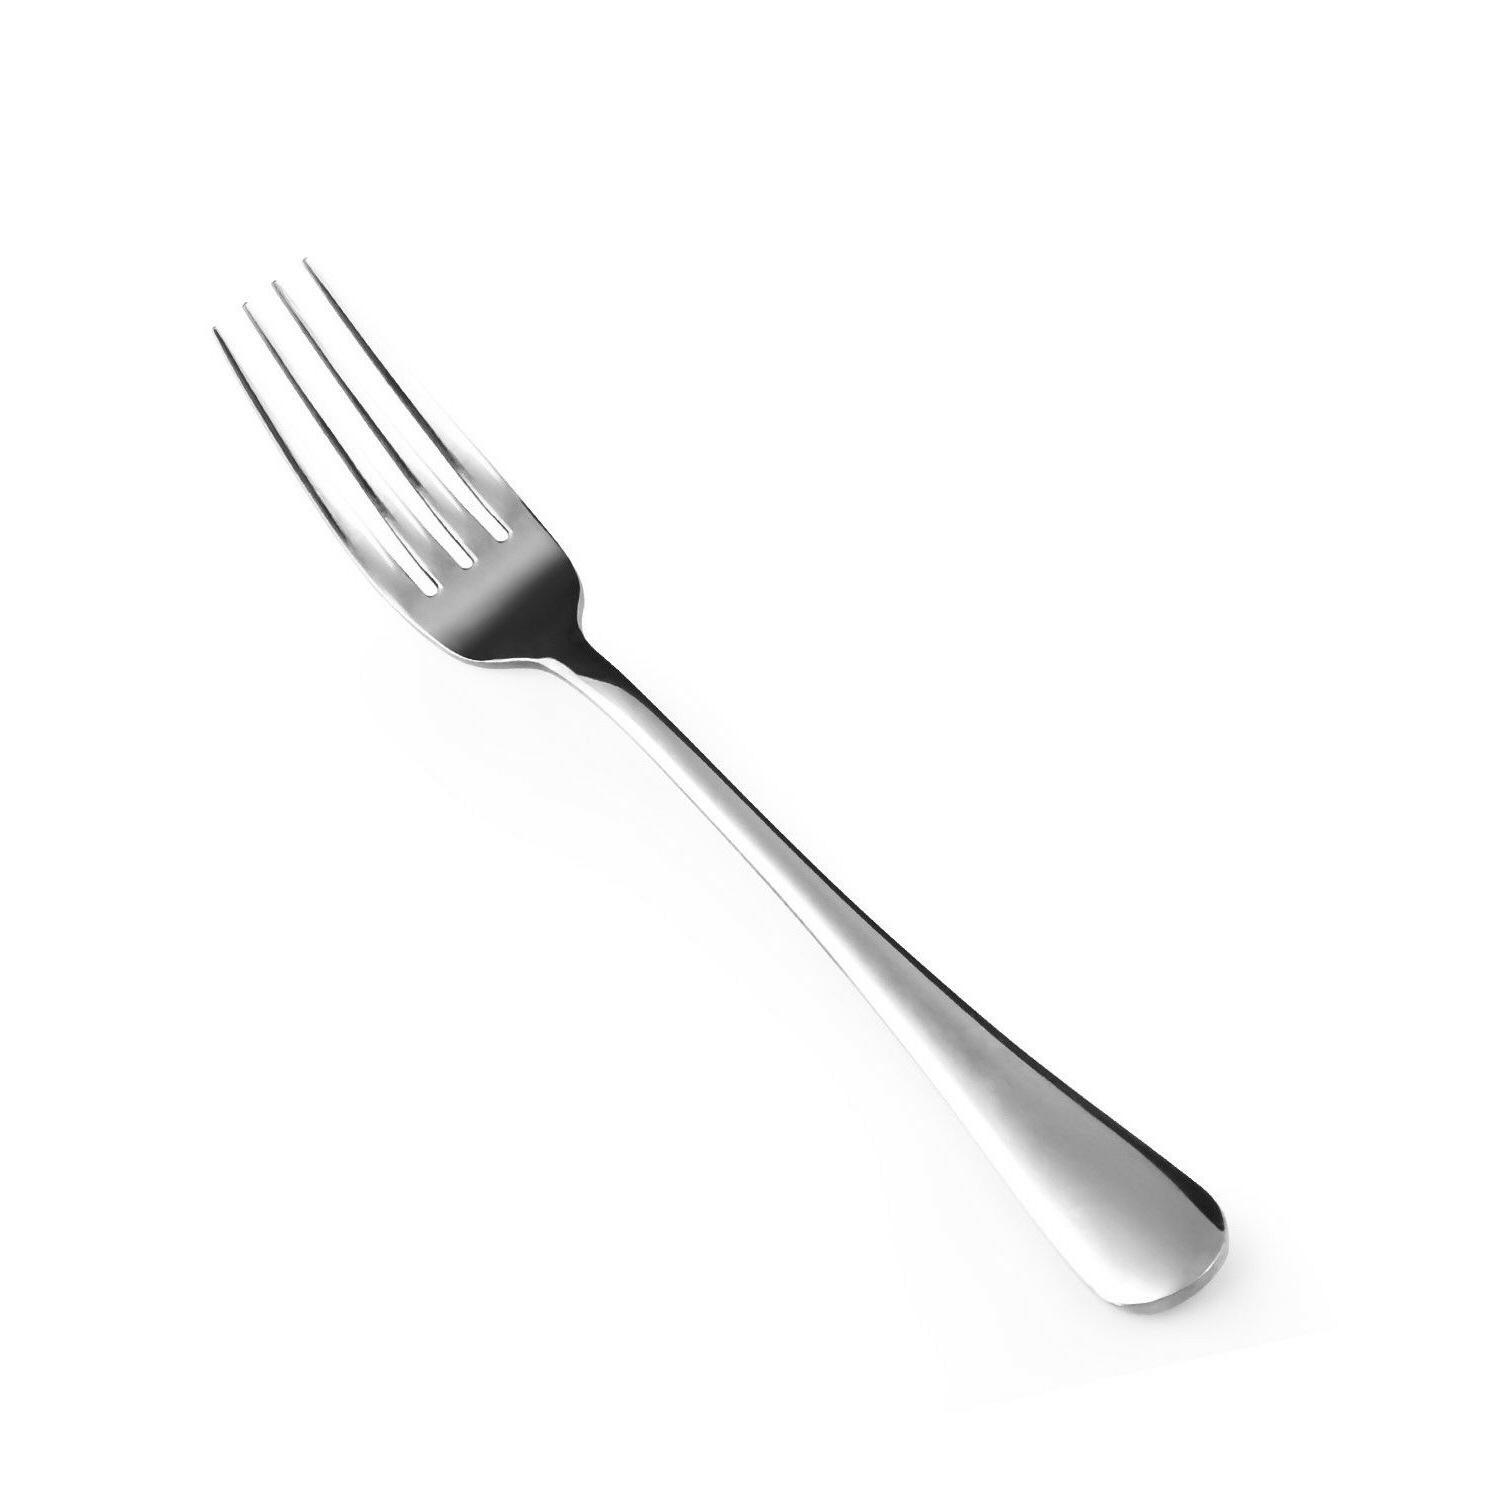 12 piece good stainless steel dinner forks